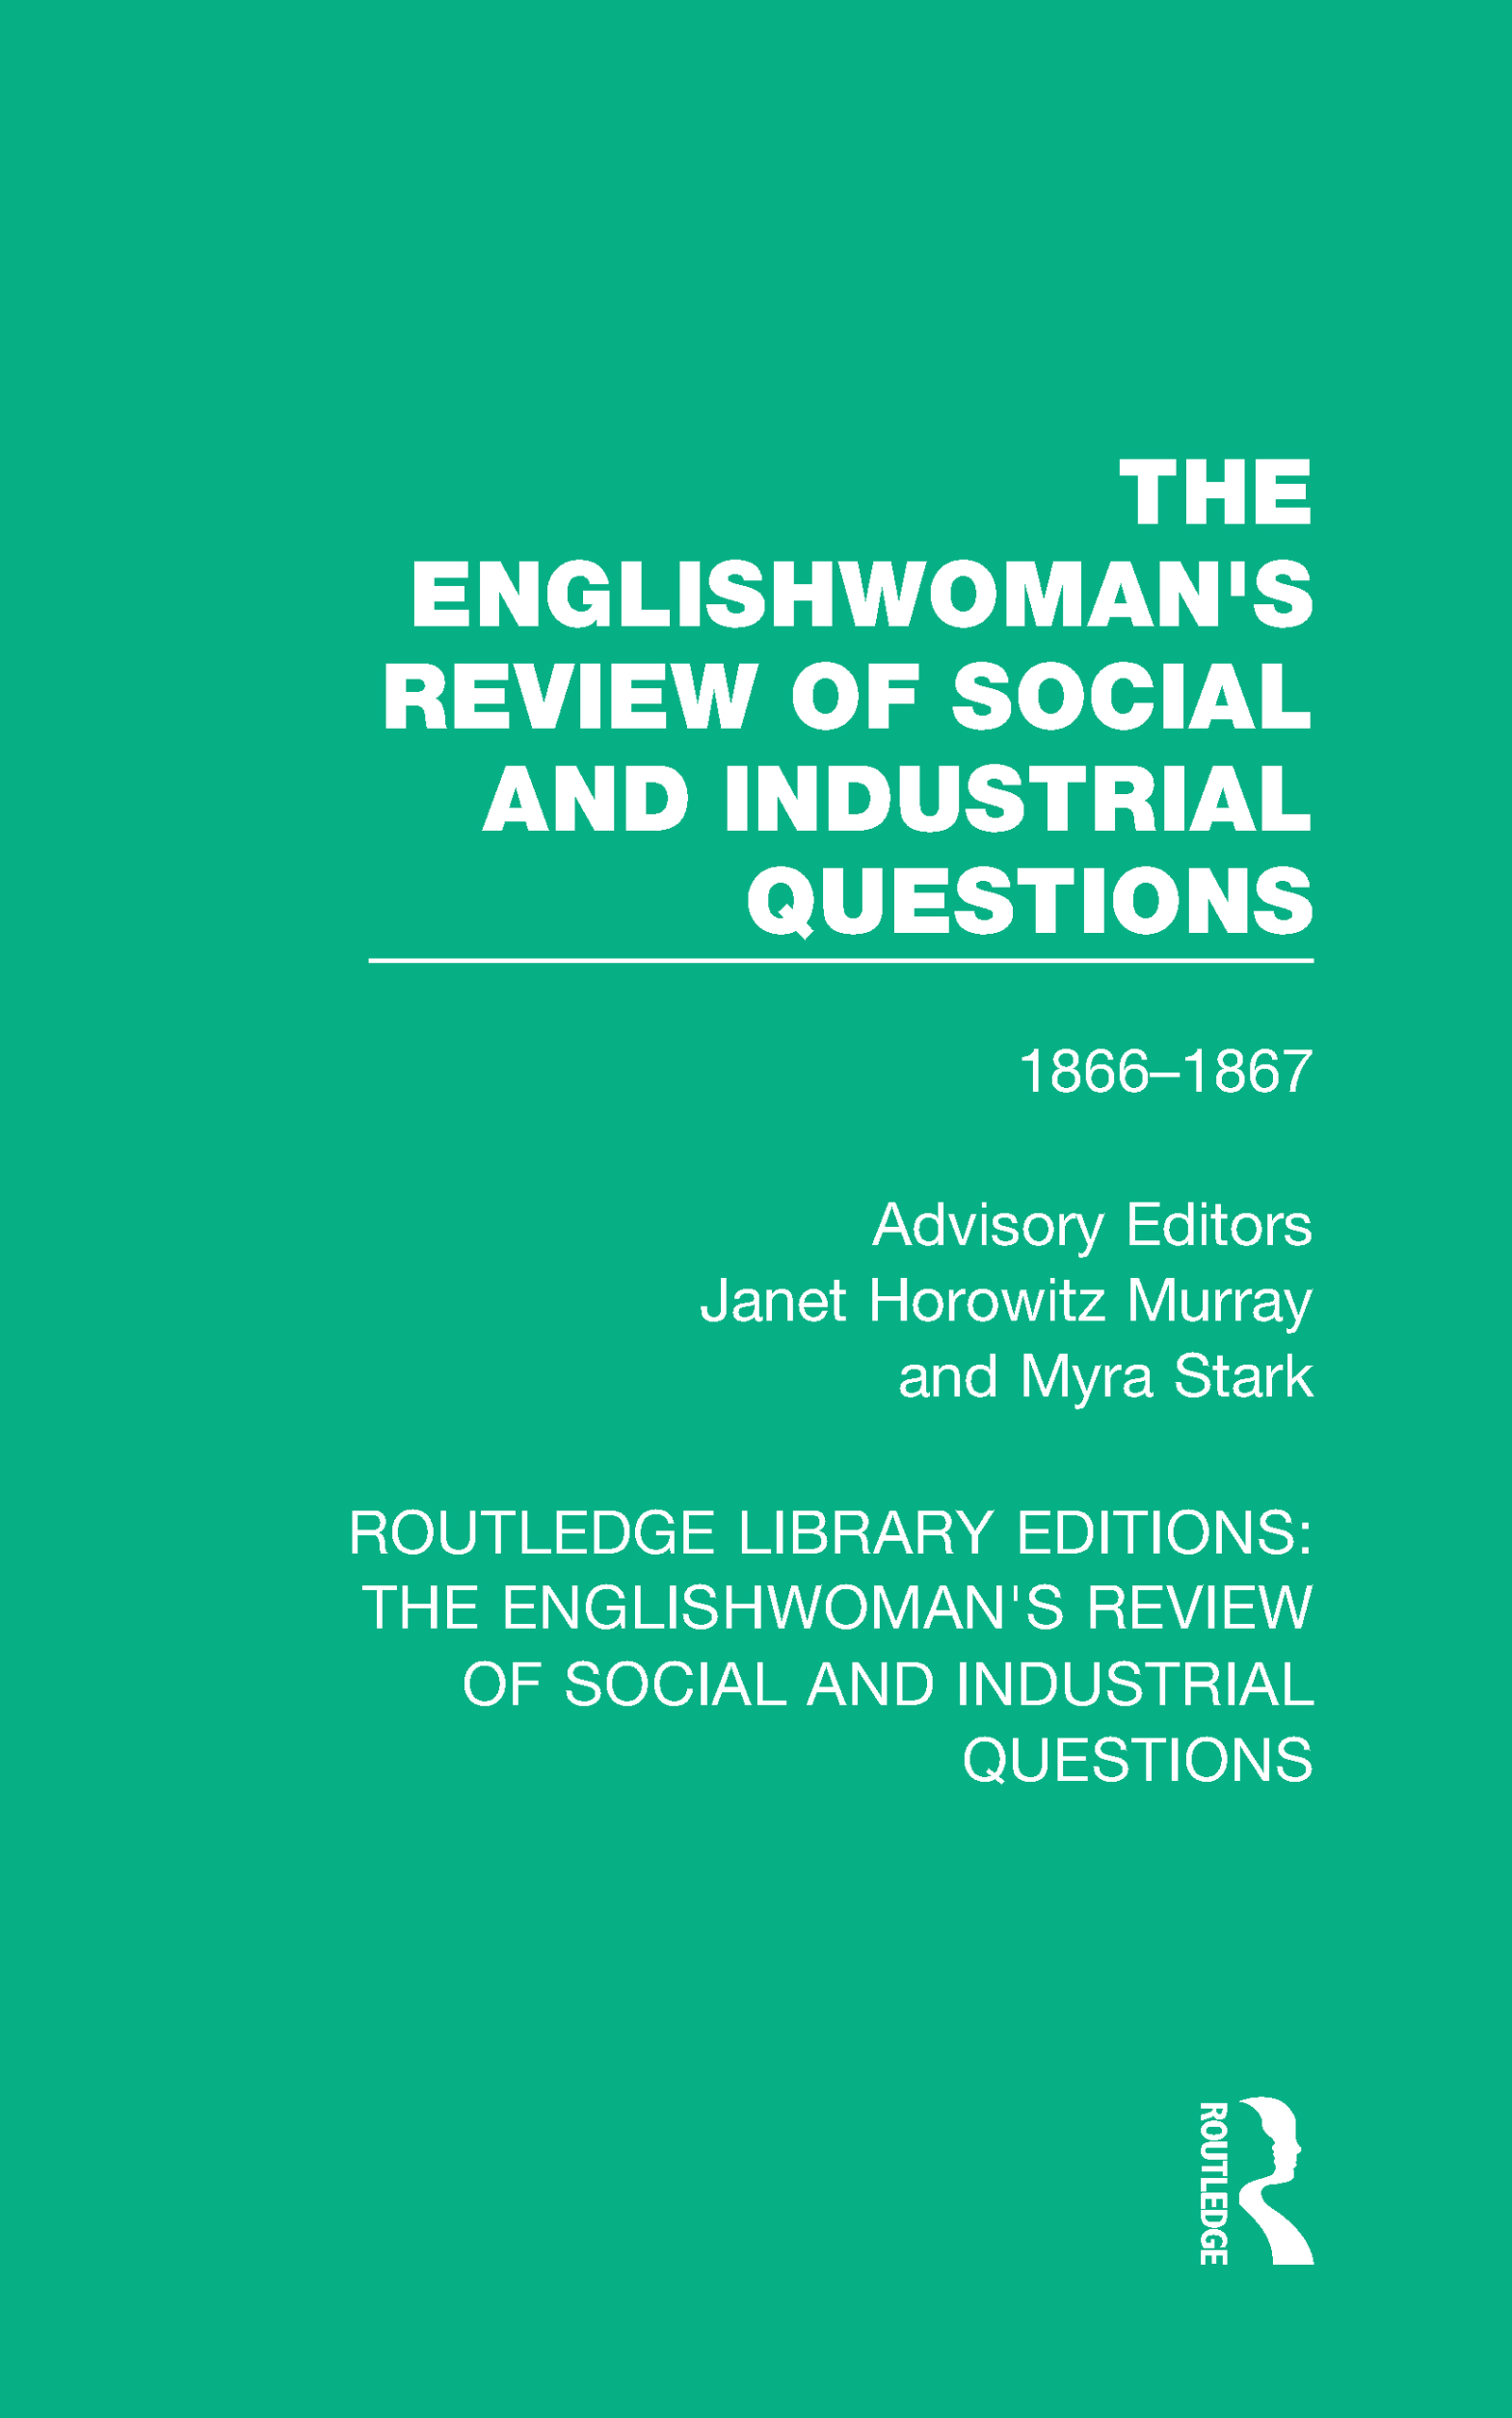 The Englishwoman's Review of Social and Industrial Questions: 1866-1867 With an introduction by Janet Horowitz Murray and Myra Stark book cover